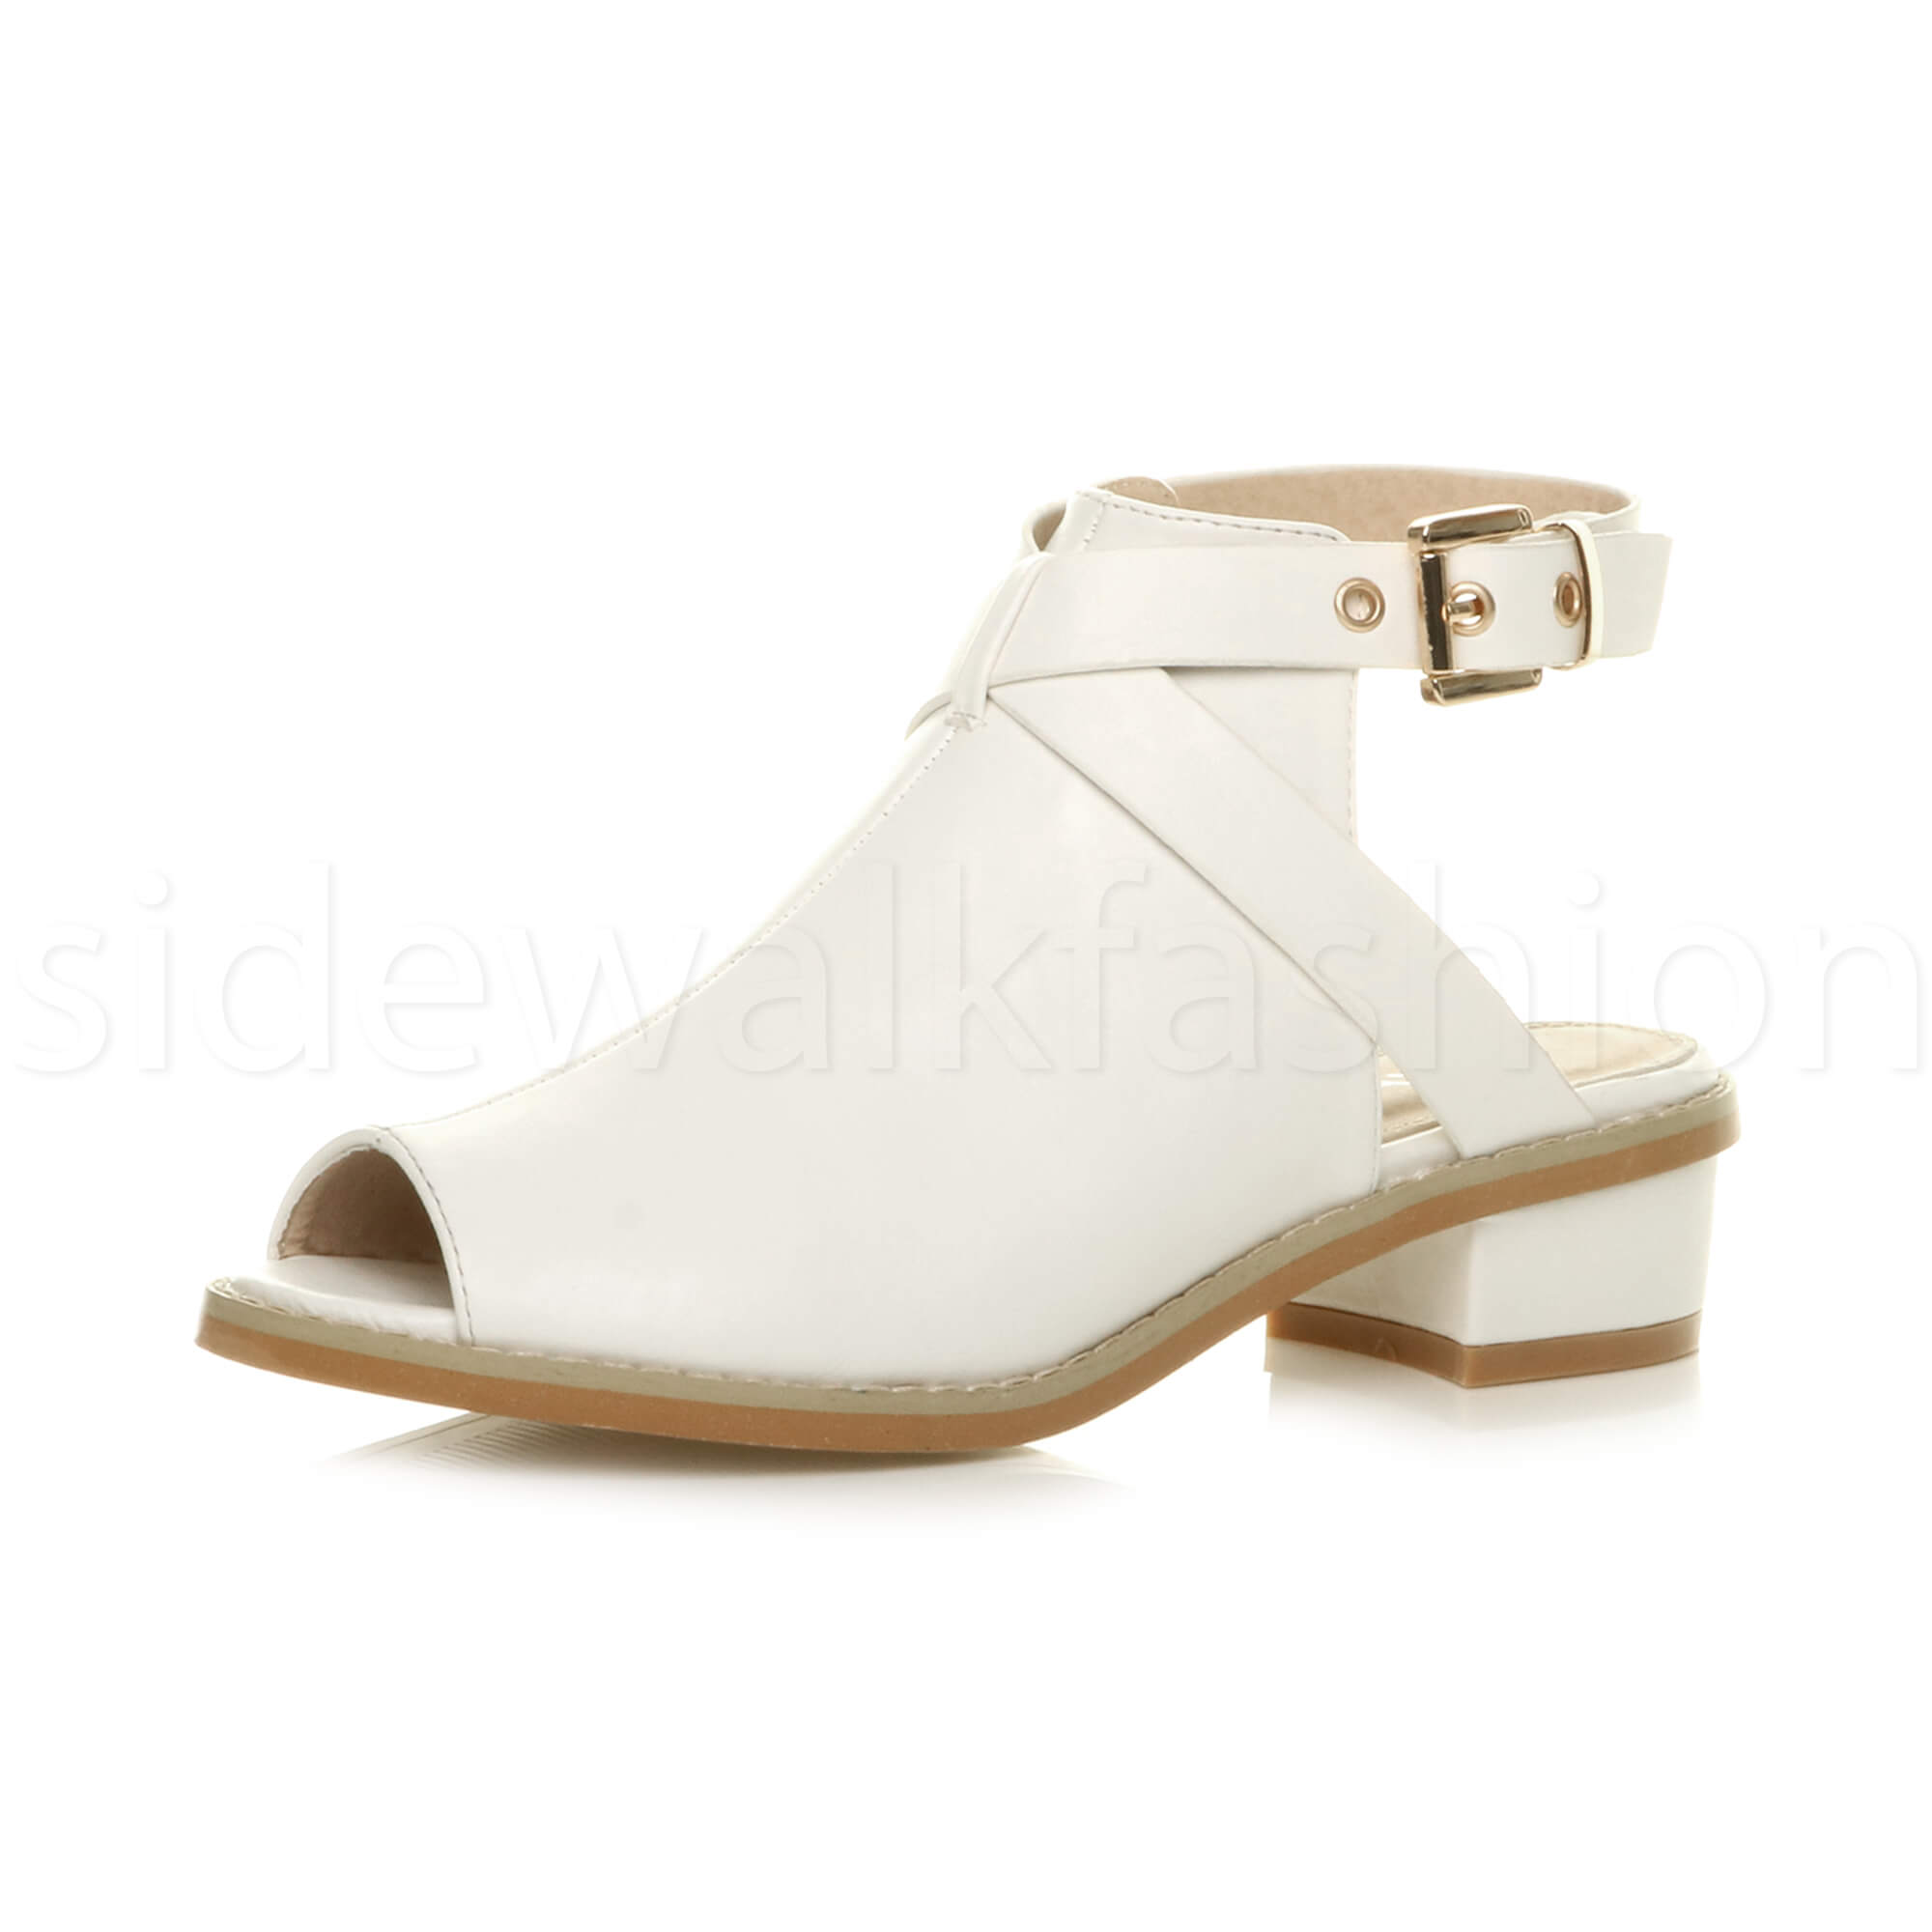 Womens-ladies-low-mid-heel-strap-open-backless-peep-toe-boots-sandals-shoes-size